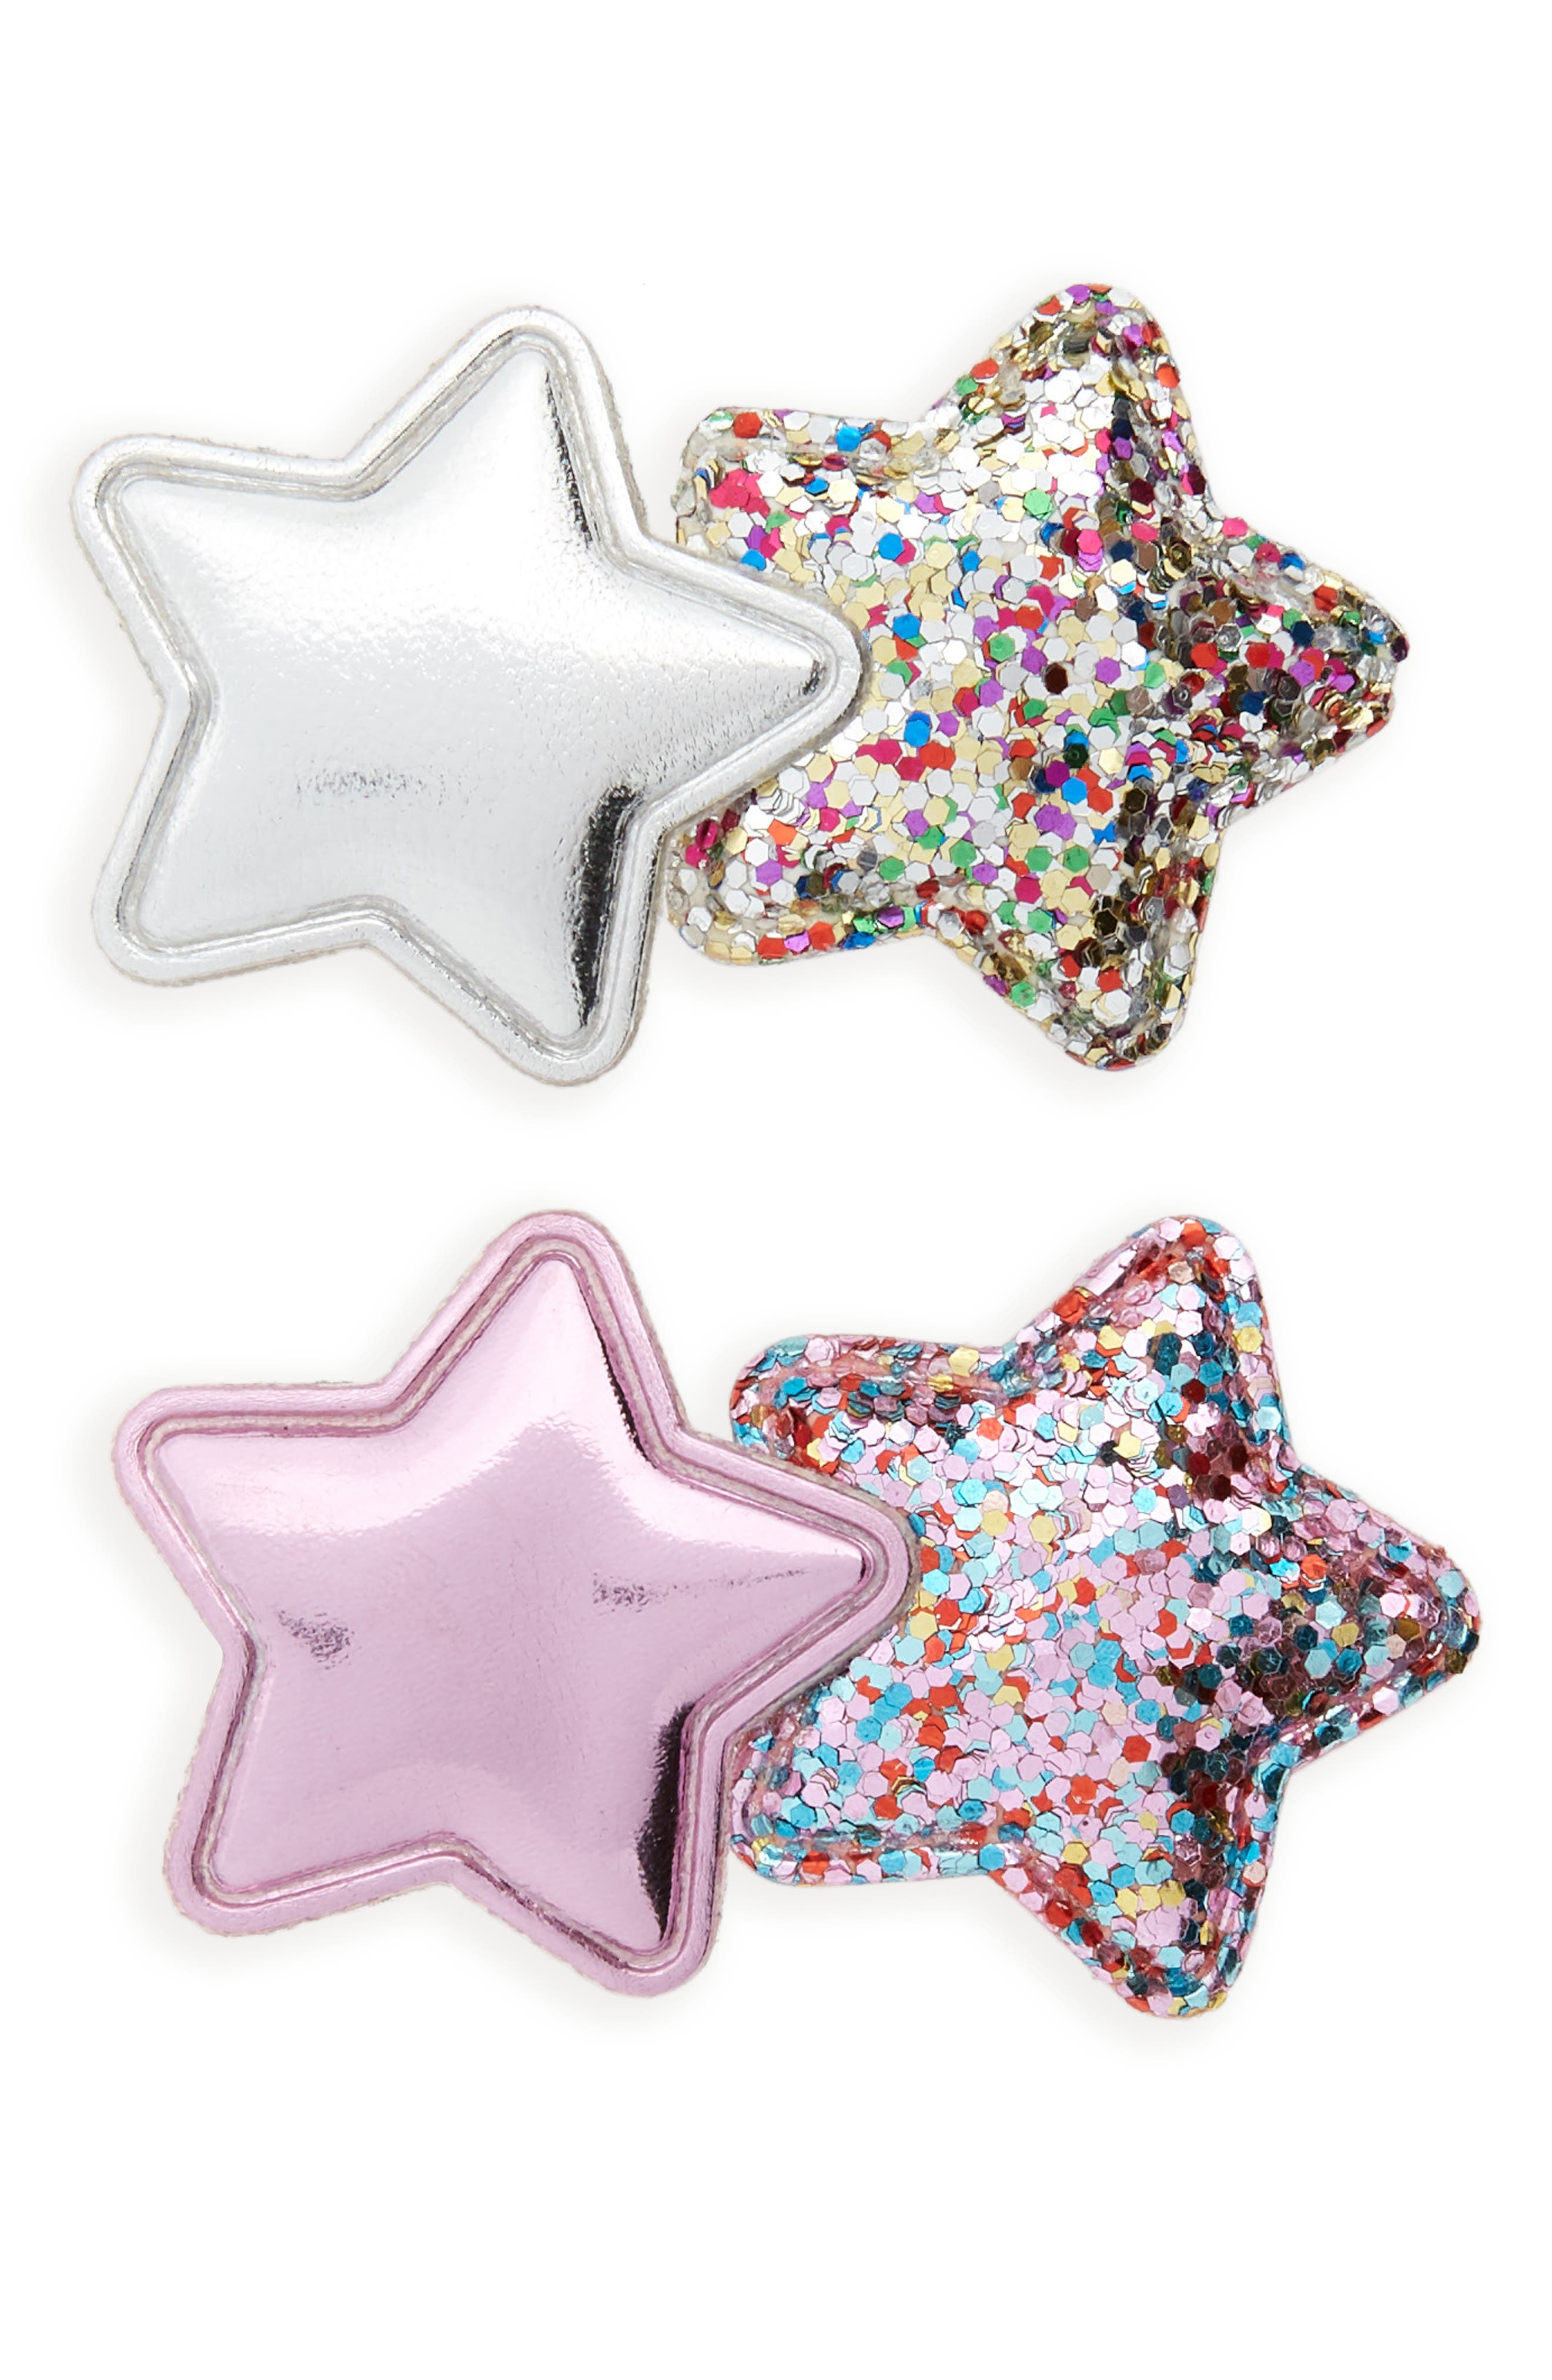 2-Pack Glitter Star Hair Clips,                         Main,                         color, 040